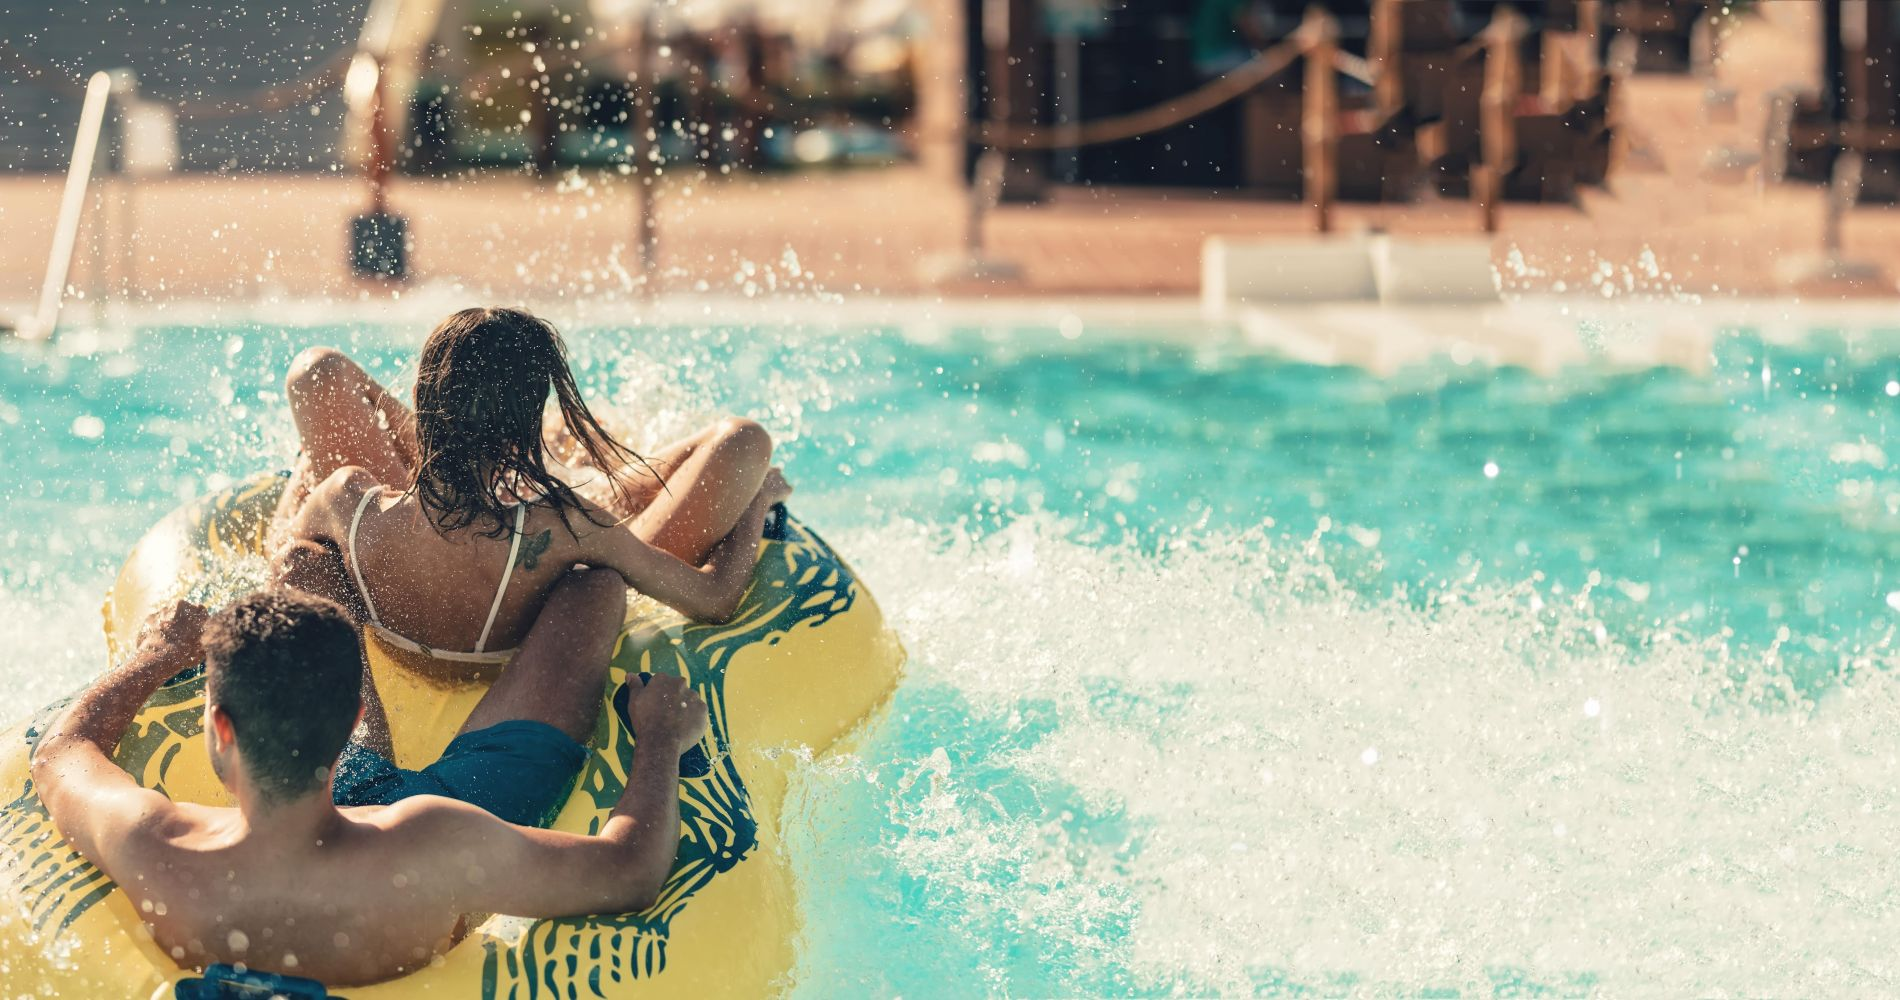 Ventura Park Pass and other Dubai attractions